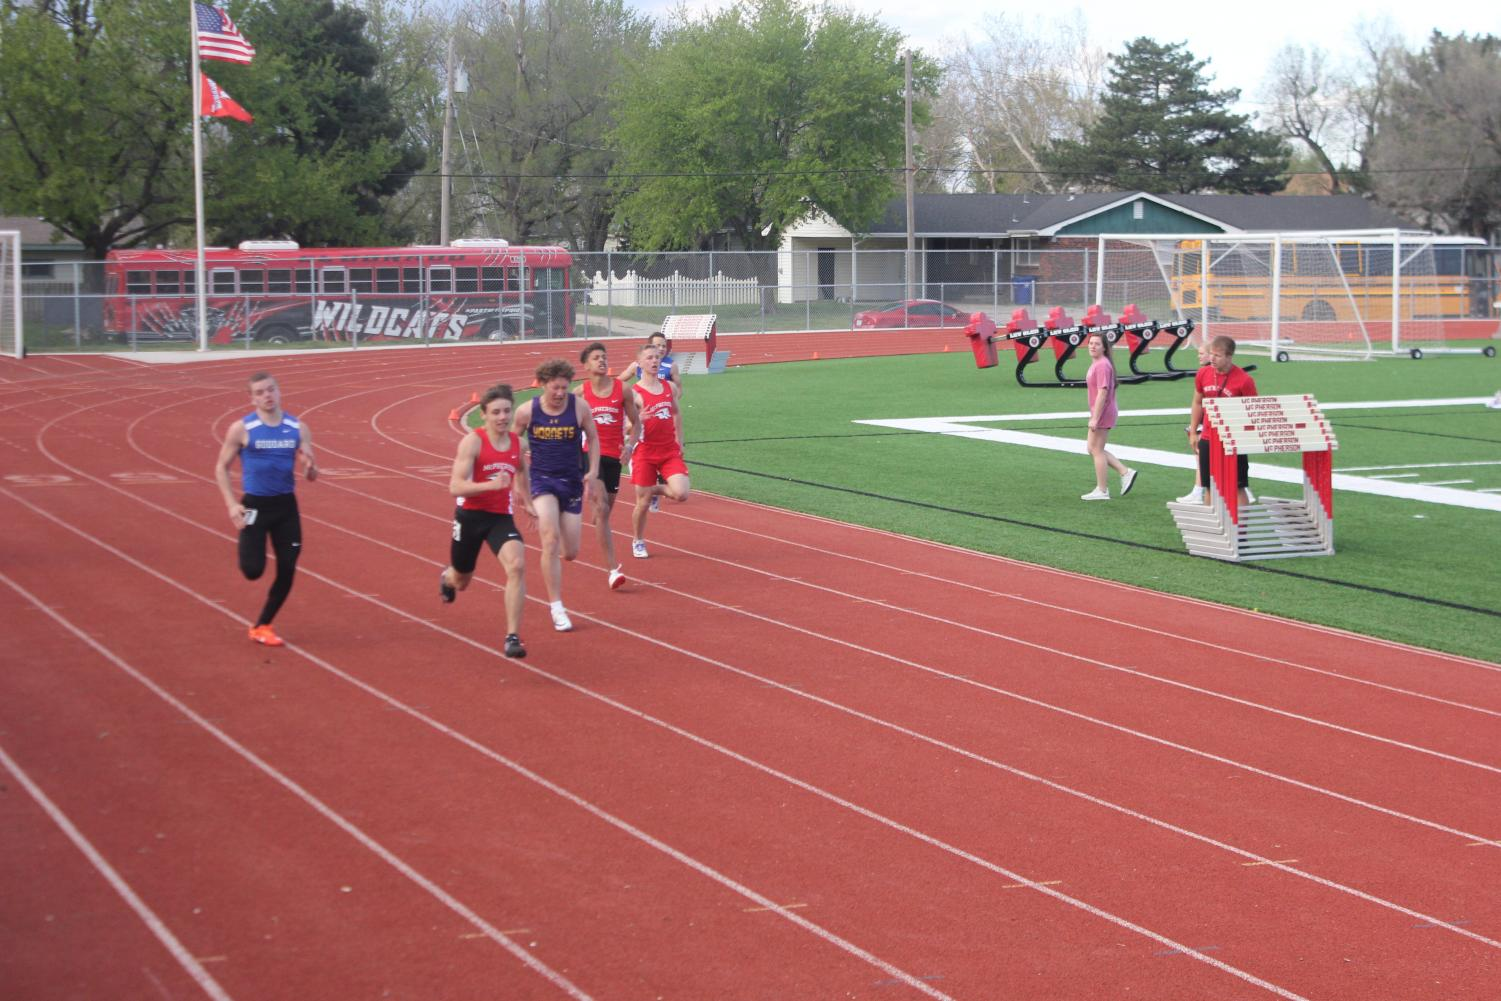 Sky+Schriner+and+other+McPherson+High+athletes%2C+pull+ahead+in+their+event.+